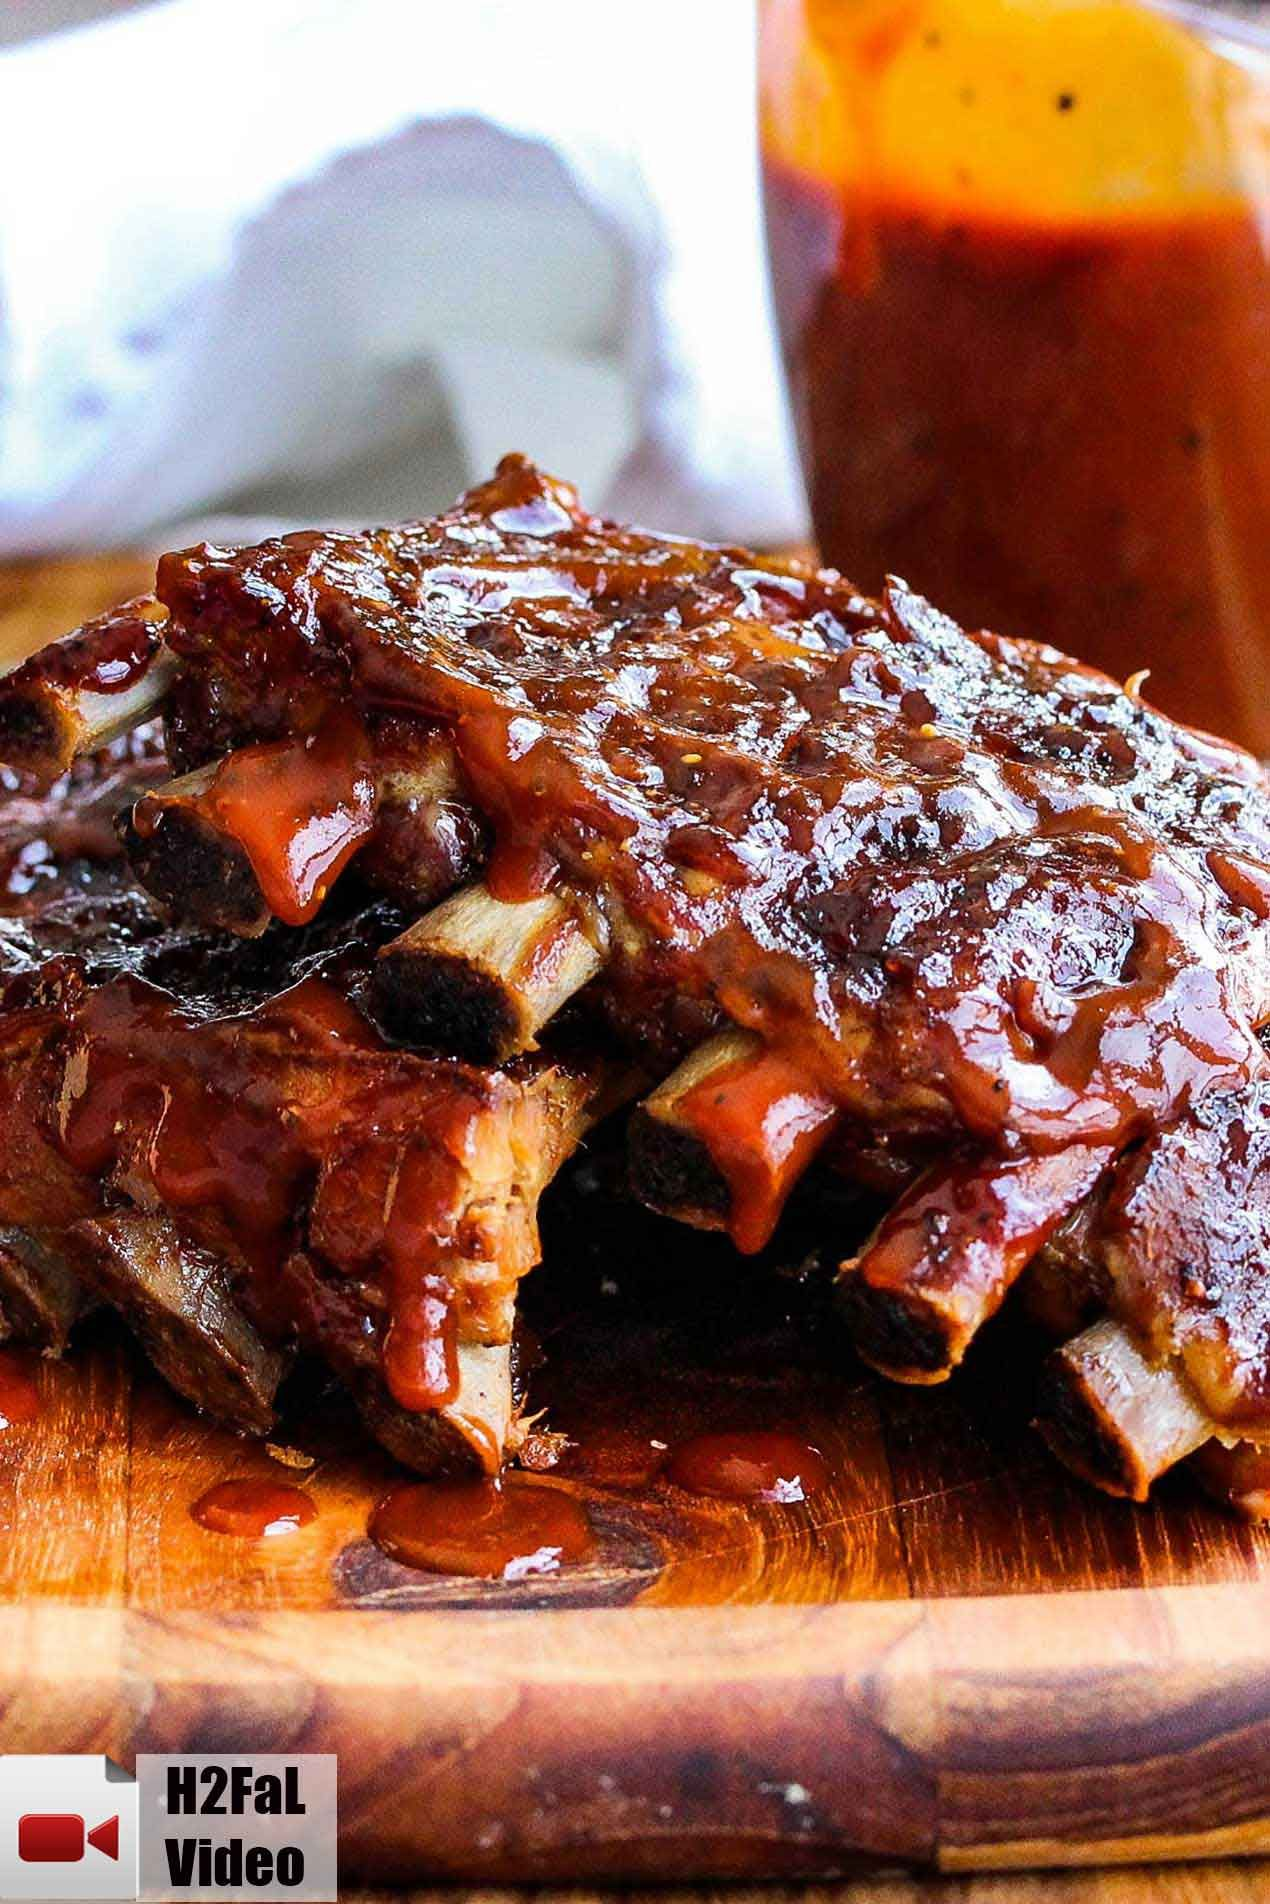 Incredible Slow Cooker Baby Back Ribs Recipe Pork Rib Recipes Bbq Sauce Homemade Easy Slow Cooker Ribs Recipe